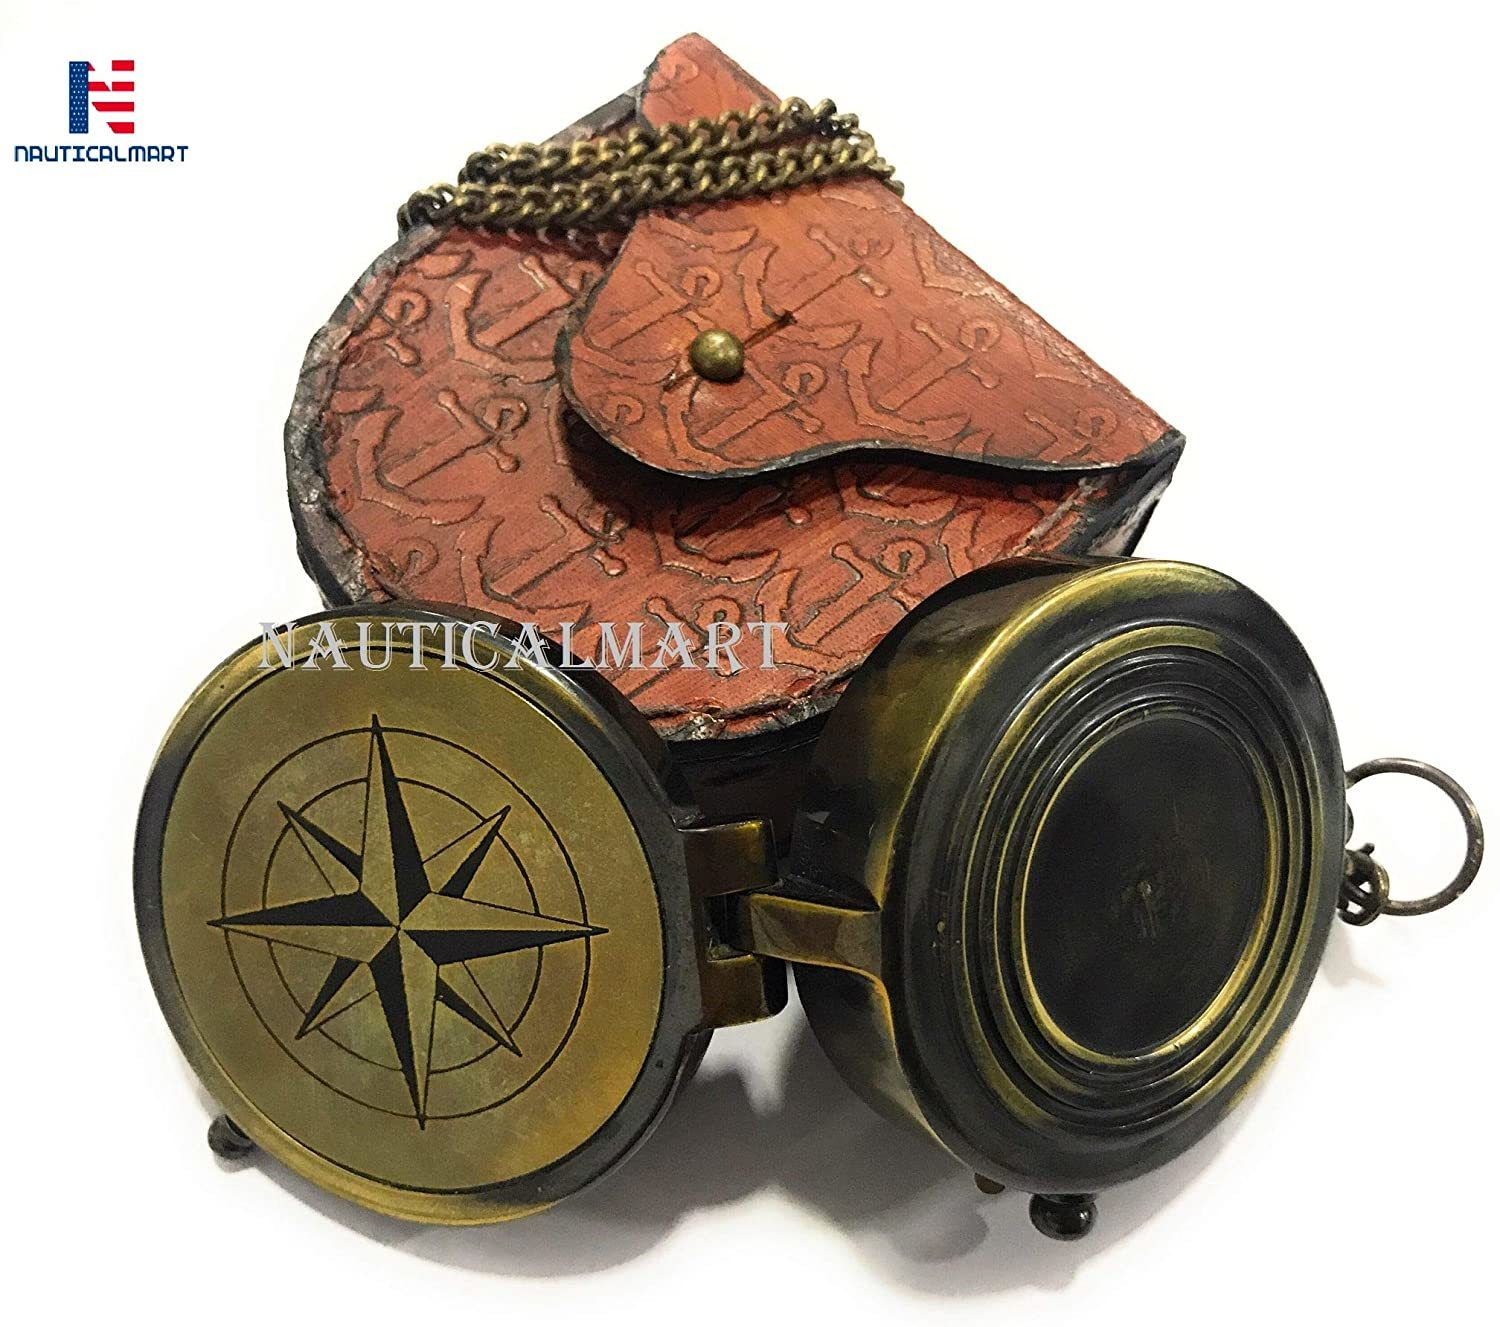 Brass Compass Will Protect You Proverbs 2:11 Antique Compass with Leather case Anchor Stamped